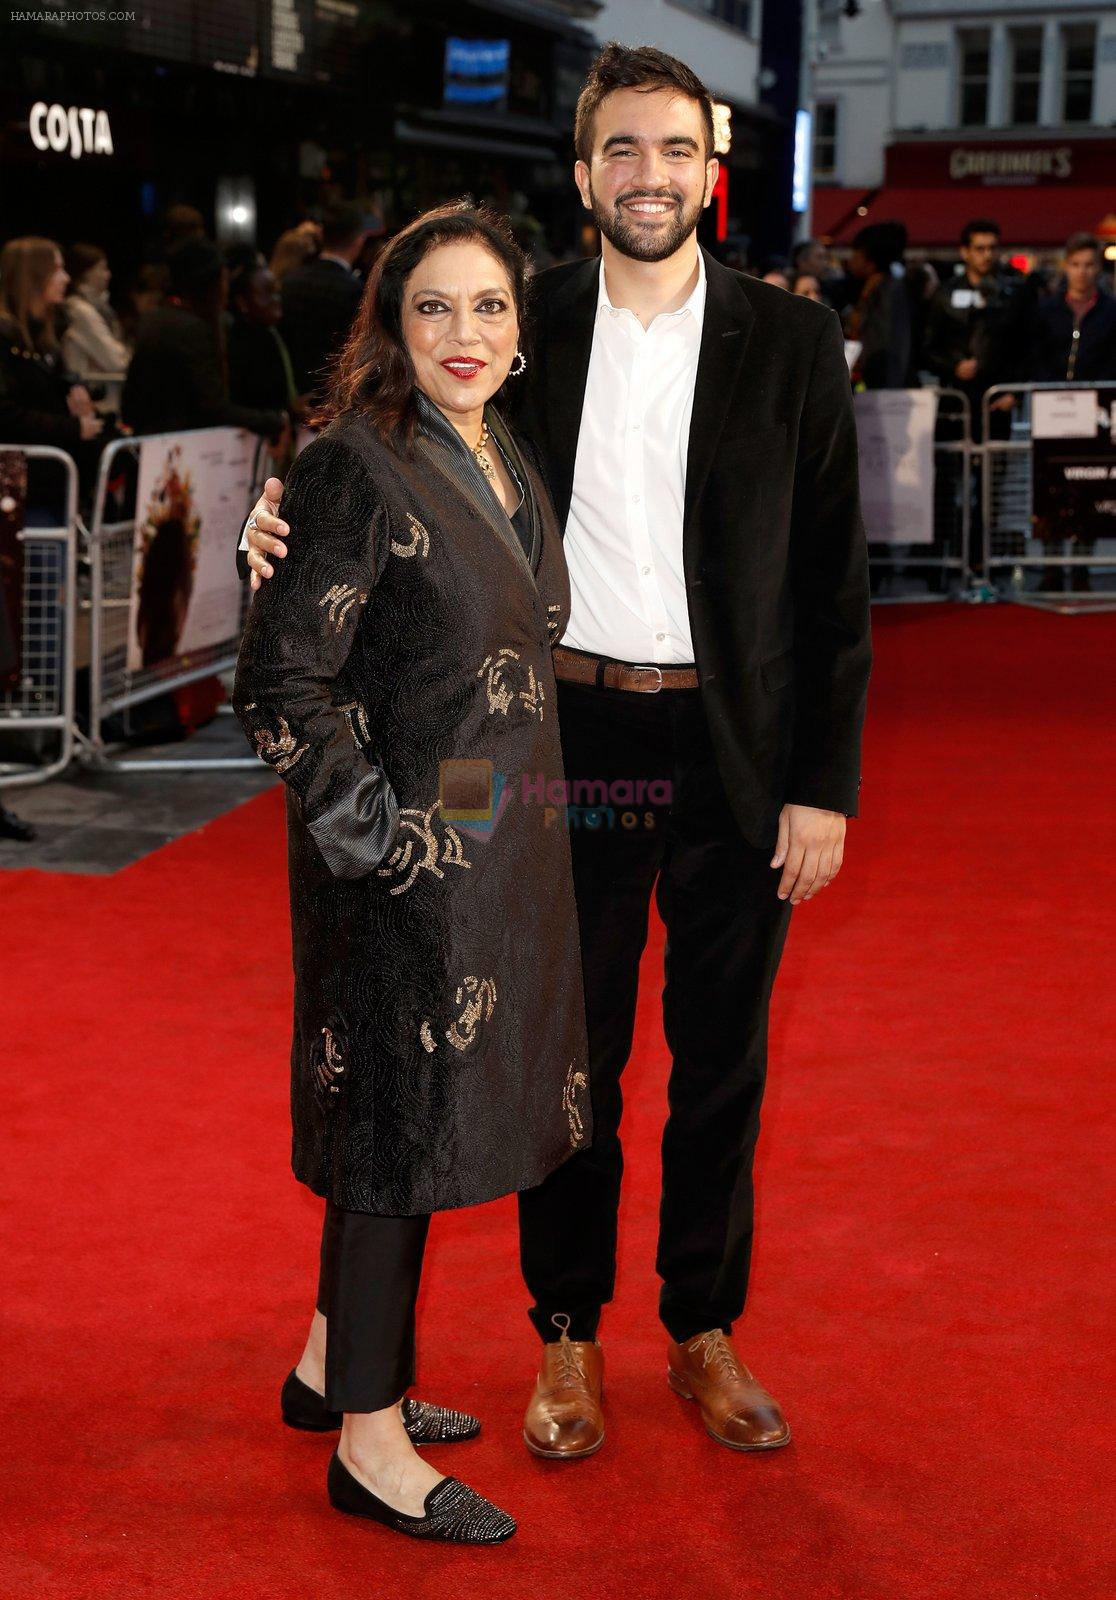 at Mira Nair's Queen of Katwe premiere in BFI London Film Festival on 10th Oct 2016